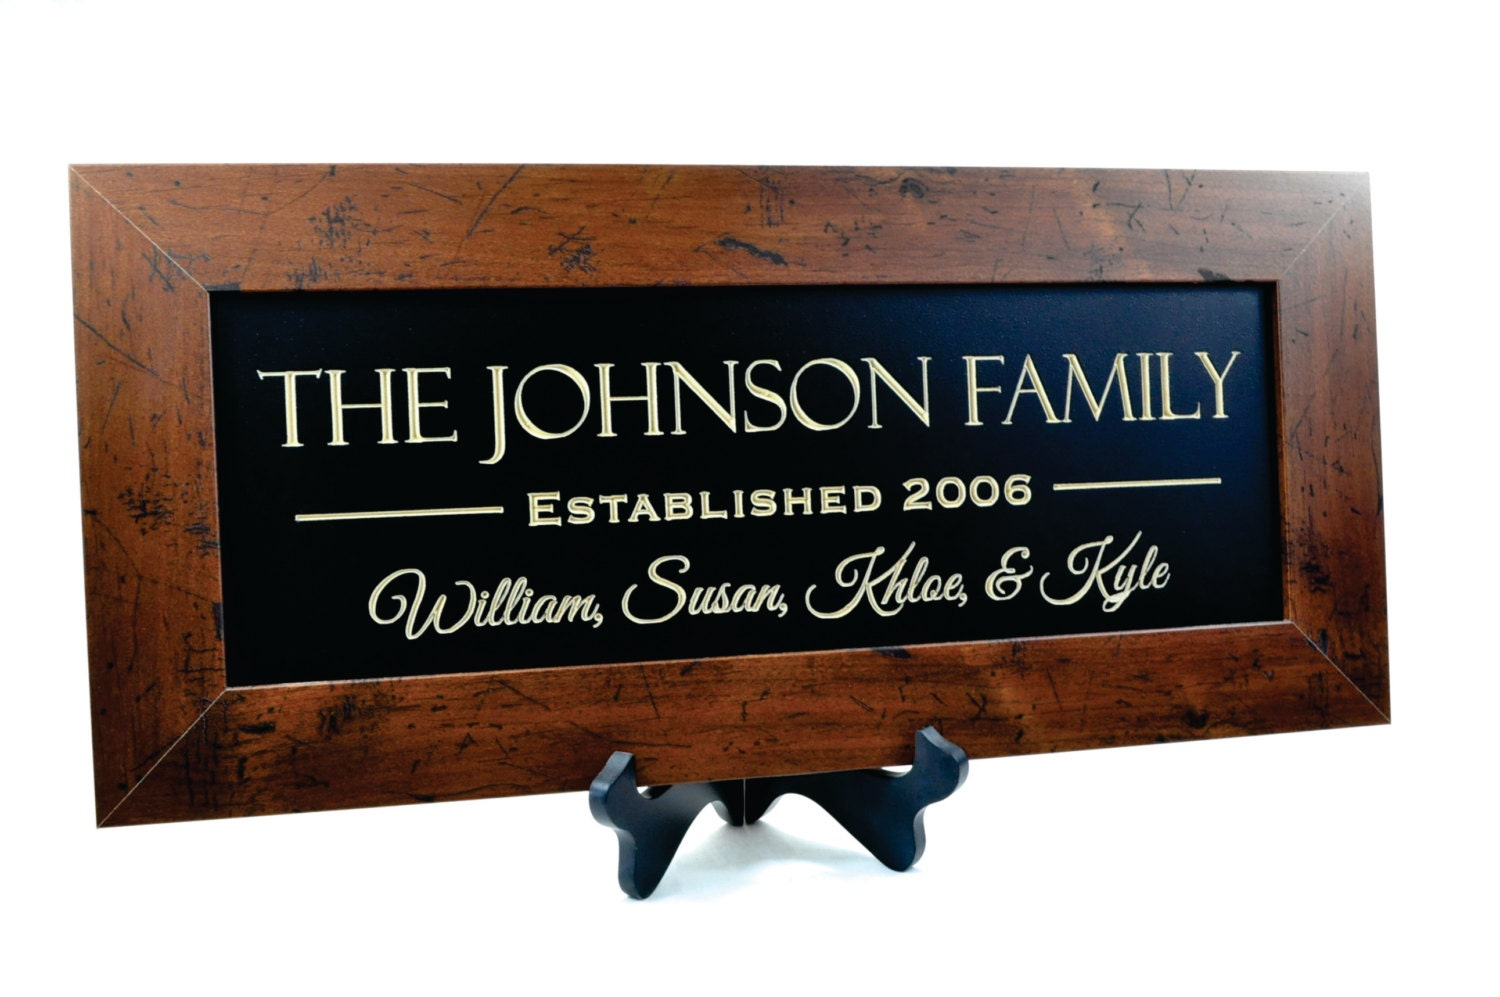 Personalized Family Name Sign Plaque Established Framed Family. What Bank Can I Open An Account Online. Free Debt Counseling Services. Roth Ira Vs Traditional Dallas Patent Lawyer. Wedding Cancellation Insurance. Business Plan For Travel Agency. Cheap 1gb Usb Flash Drives Identity Theft 911. Residential Diesel Standby Generator. National Benefit Life Insurance Company